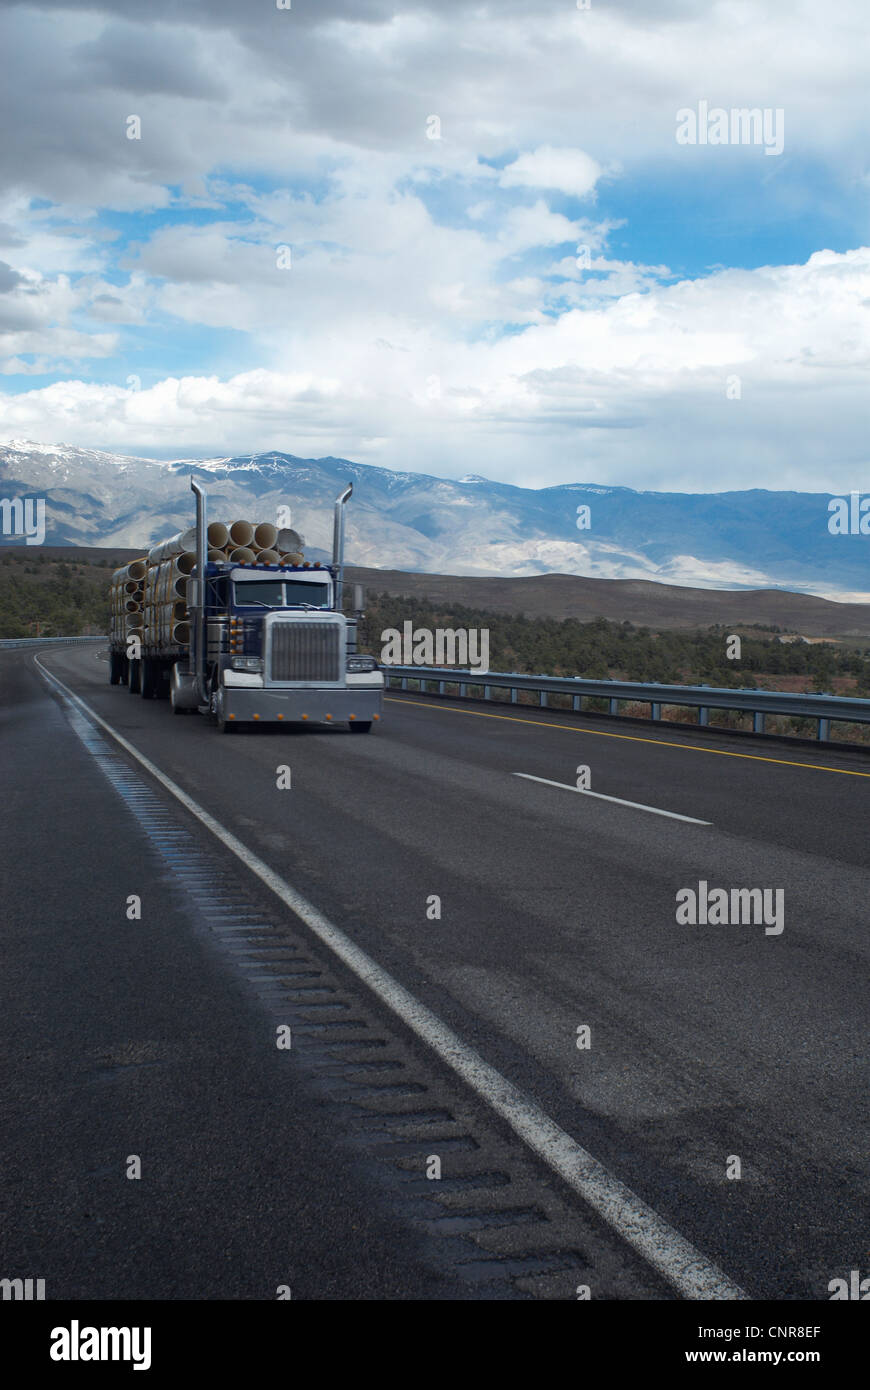 Truck carrying logs in rural landscape - Stock Image